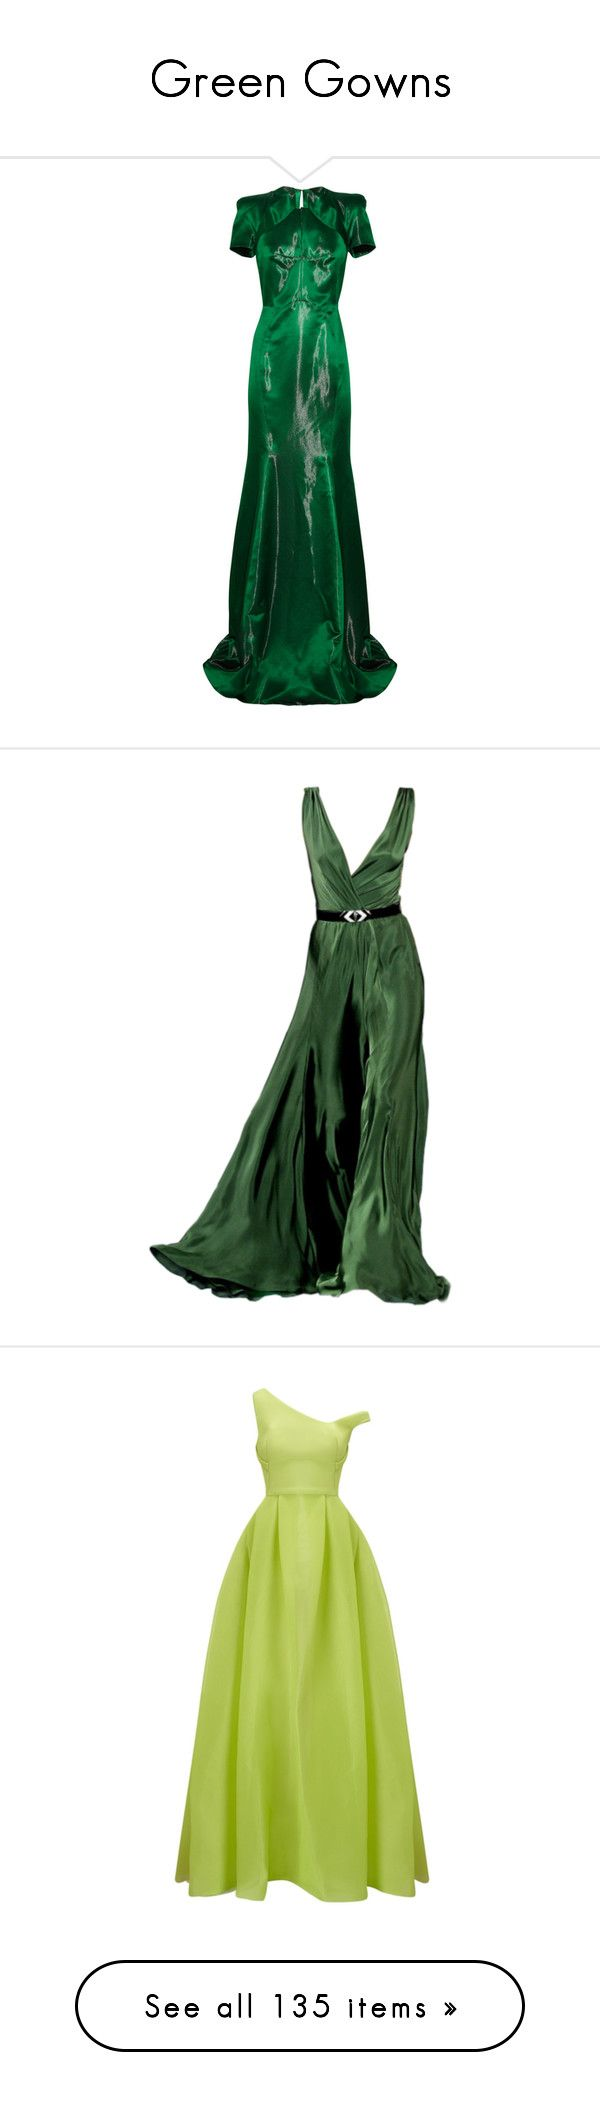 """""""Green Gowns"""" by srta-sr ❤ liked on Polyvore featuring smrgowns, dresses, gowns, long dresses, green, zac posen, dark green, green ball gown, green dress and dark green dress"""